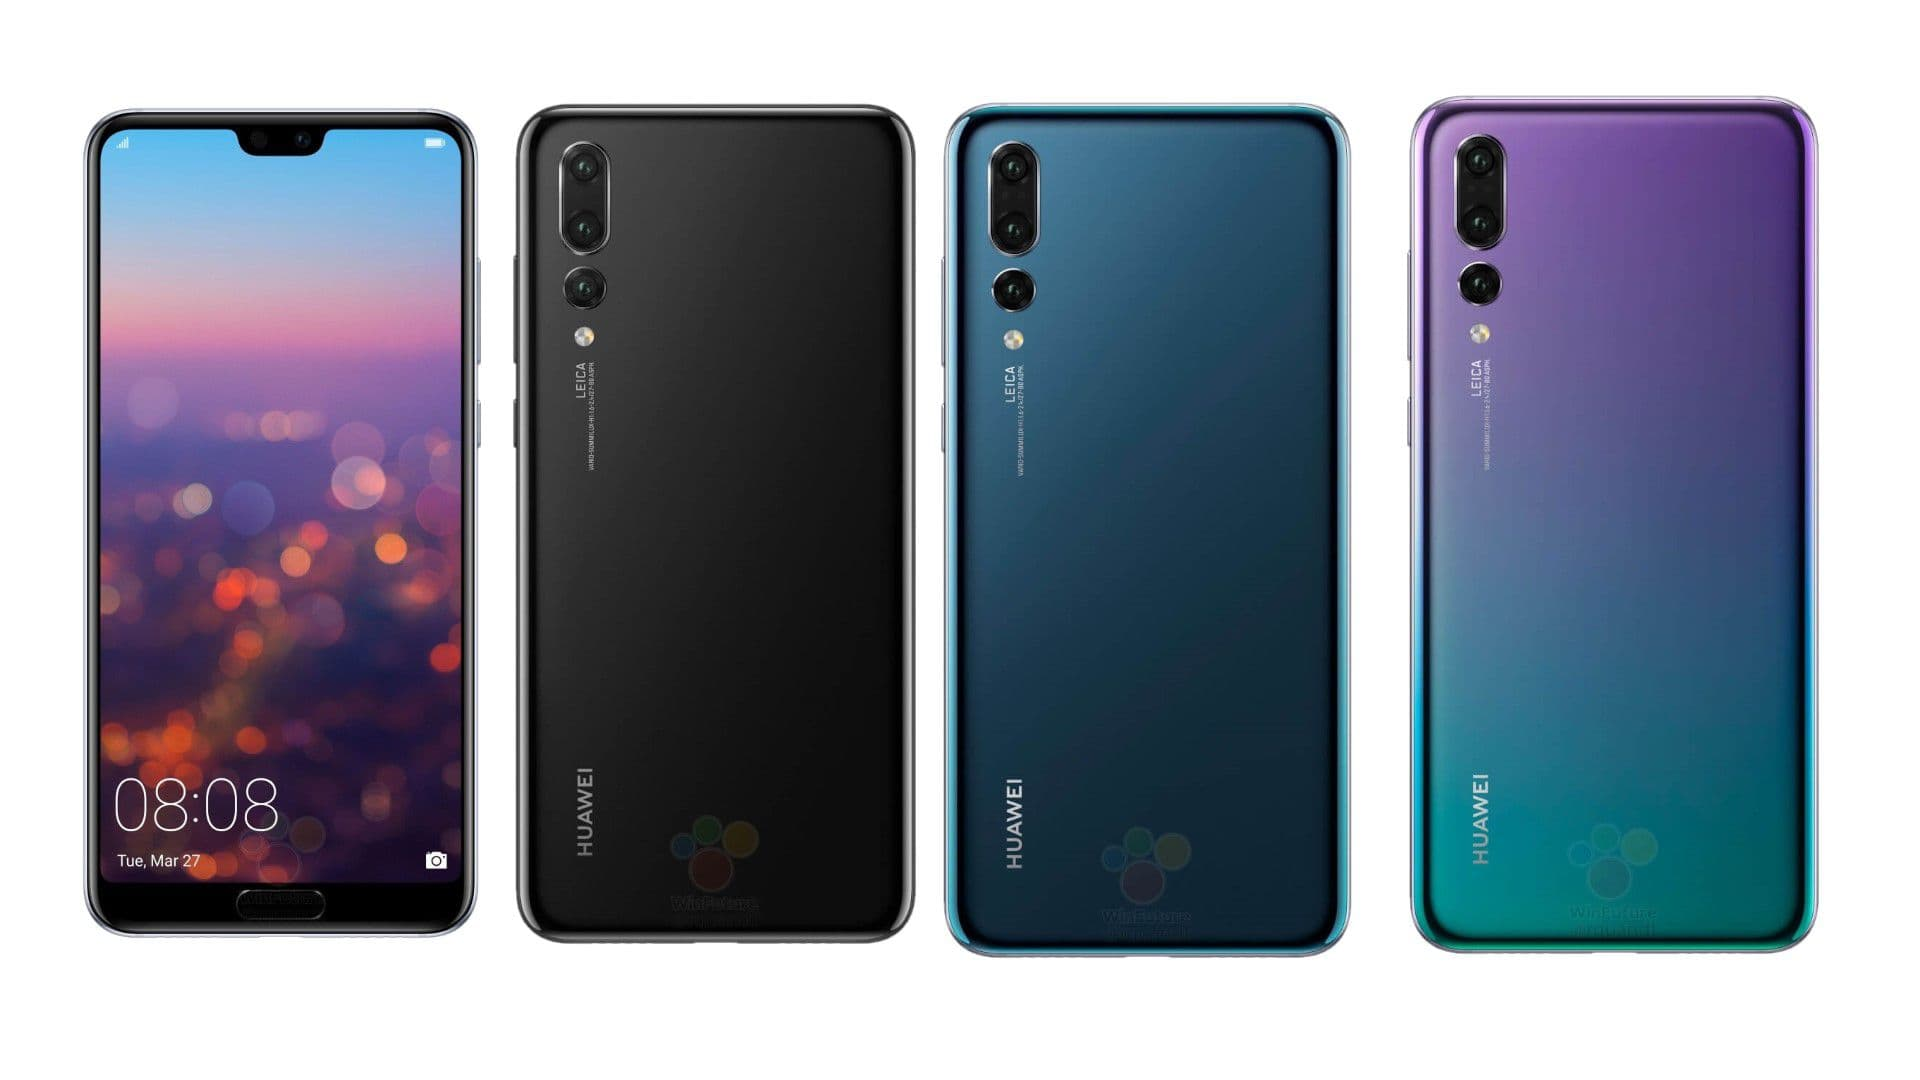 Huawei P20 Pro Buy Smartphone Compare Prices In Stores